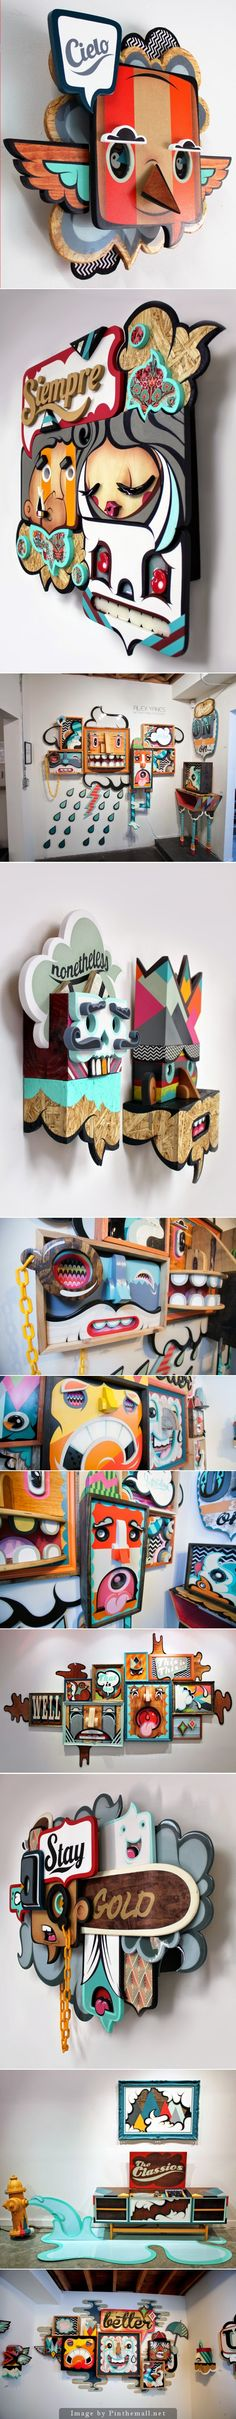 Graffiti 3D de Alex Yanes Visto